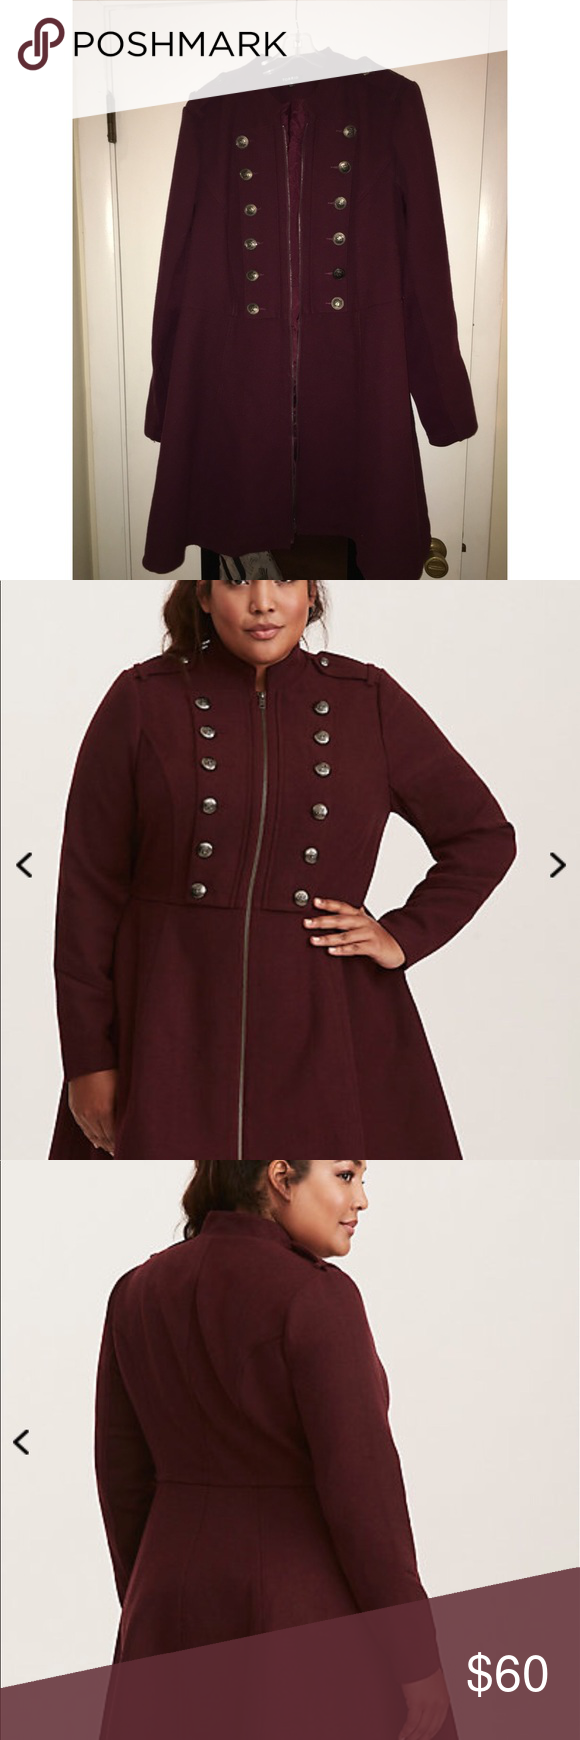 Torrid flannel dress  Long Maroon Peacoat  My Posh Picks  Pinterest  Torrid and Clothes